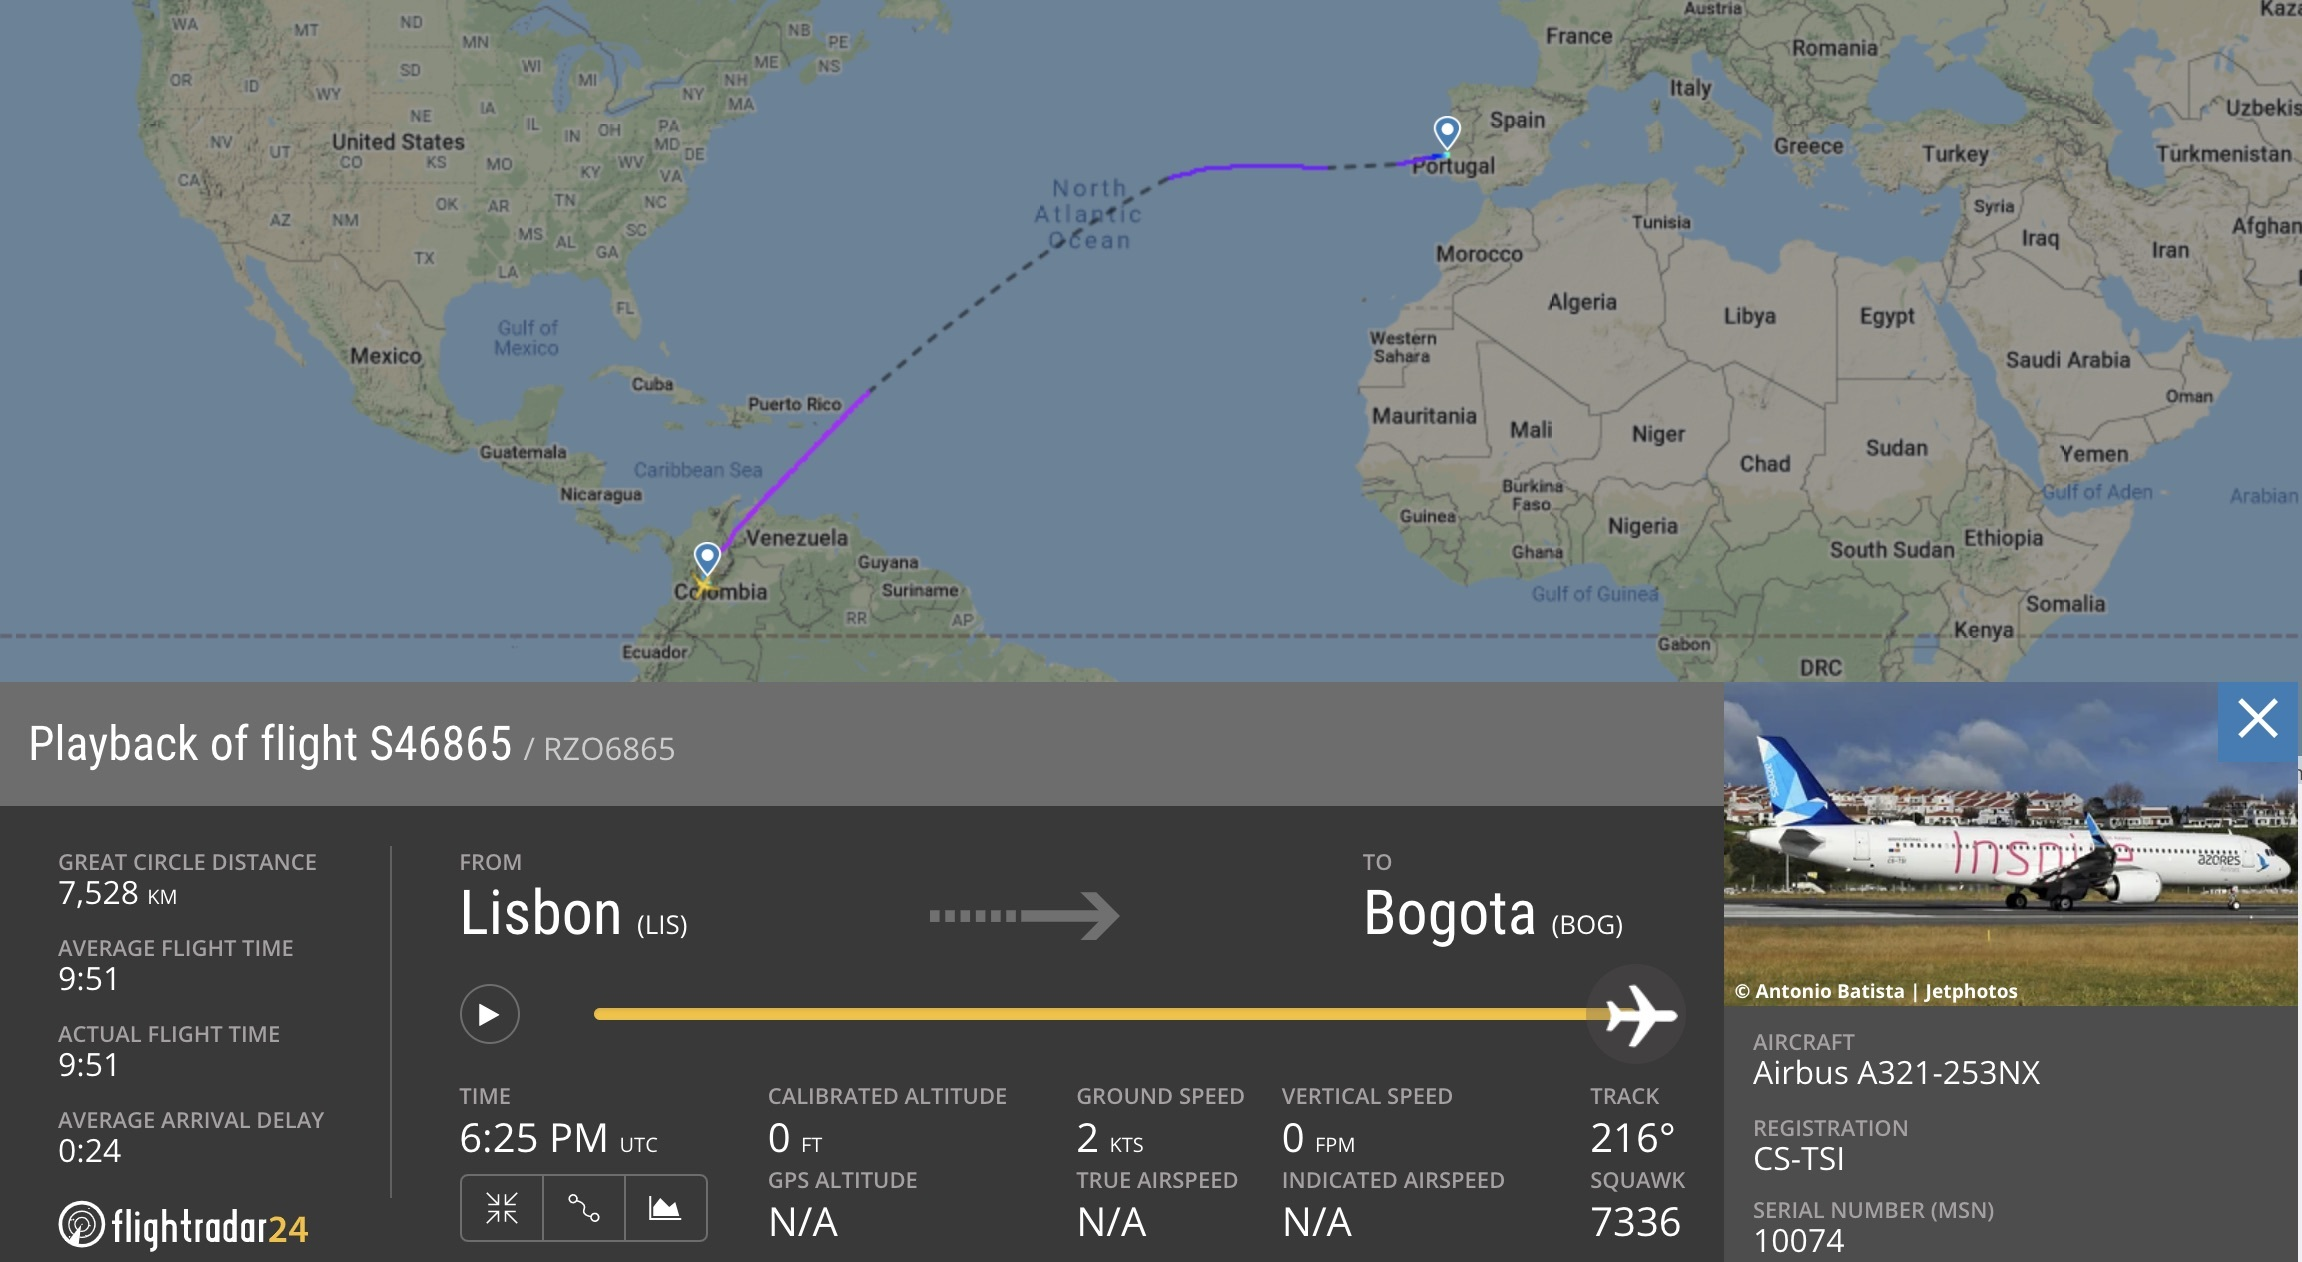 Azores Airlines A321LR flight from Lisbon to Bogota